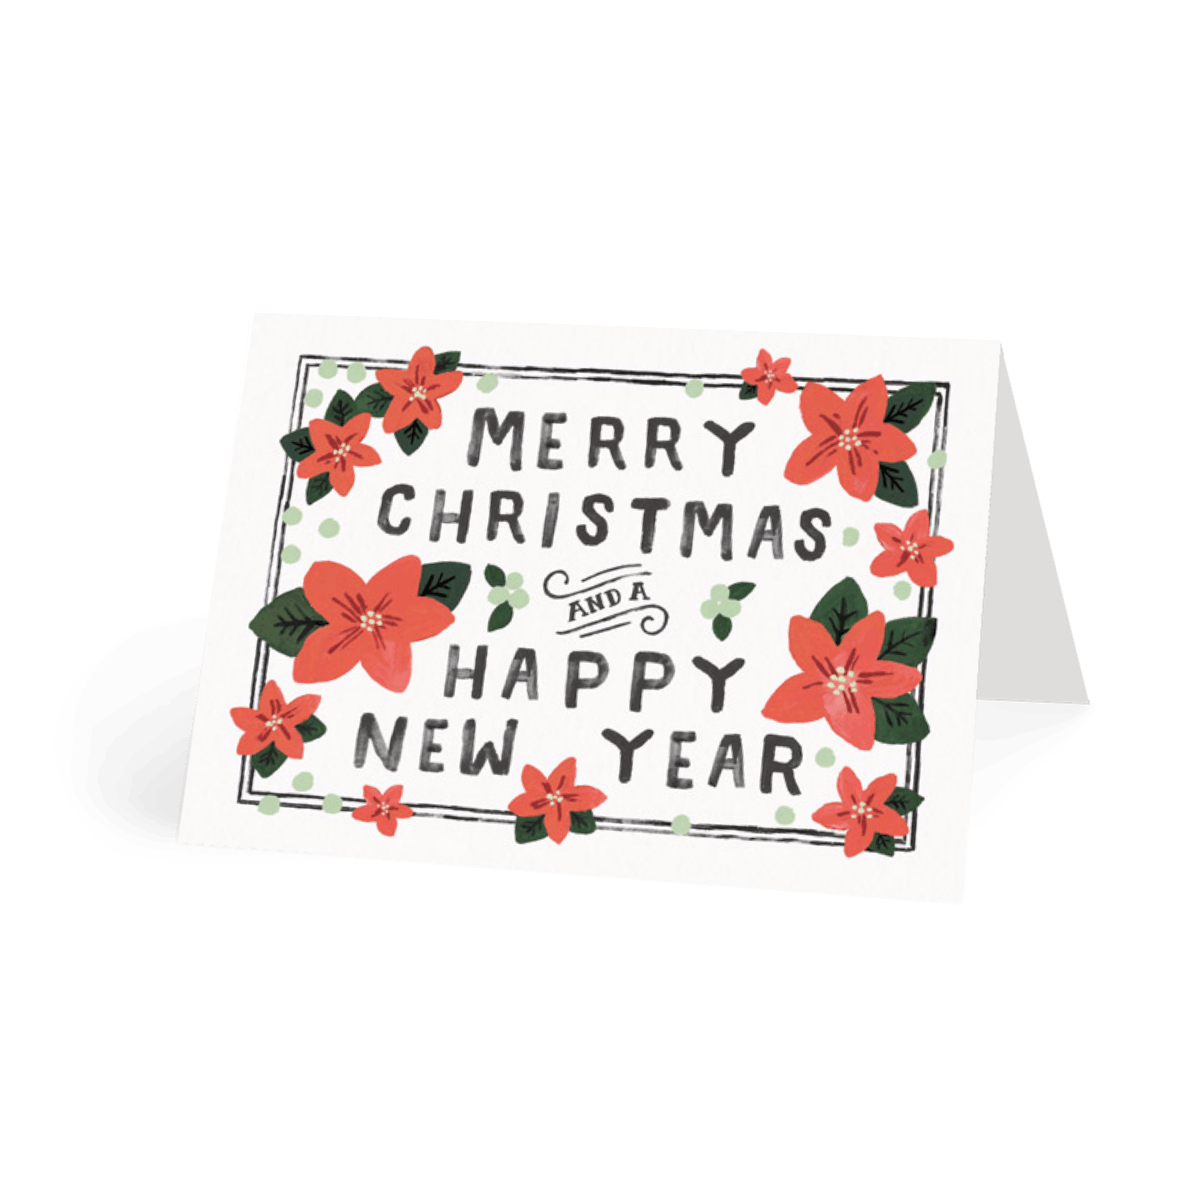 Https%3a%2f%2fwww.papier.com%2fproduct image%2f10002%2f14%2fchristmas poinsettia 2543 front 1470389332.png?ixlib=rb 1.1